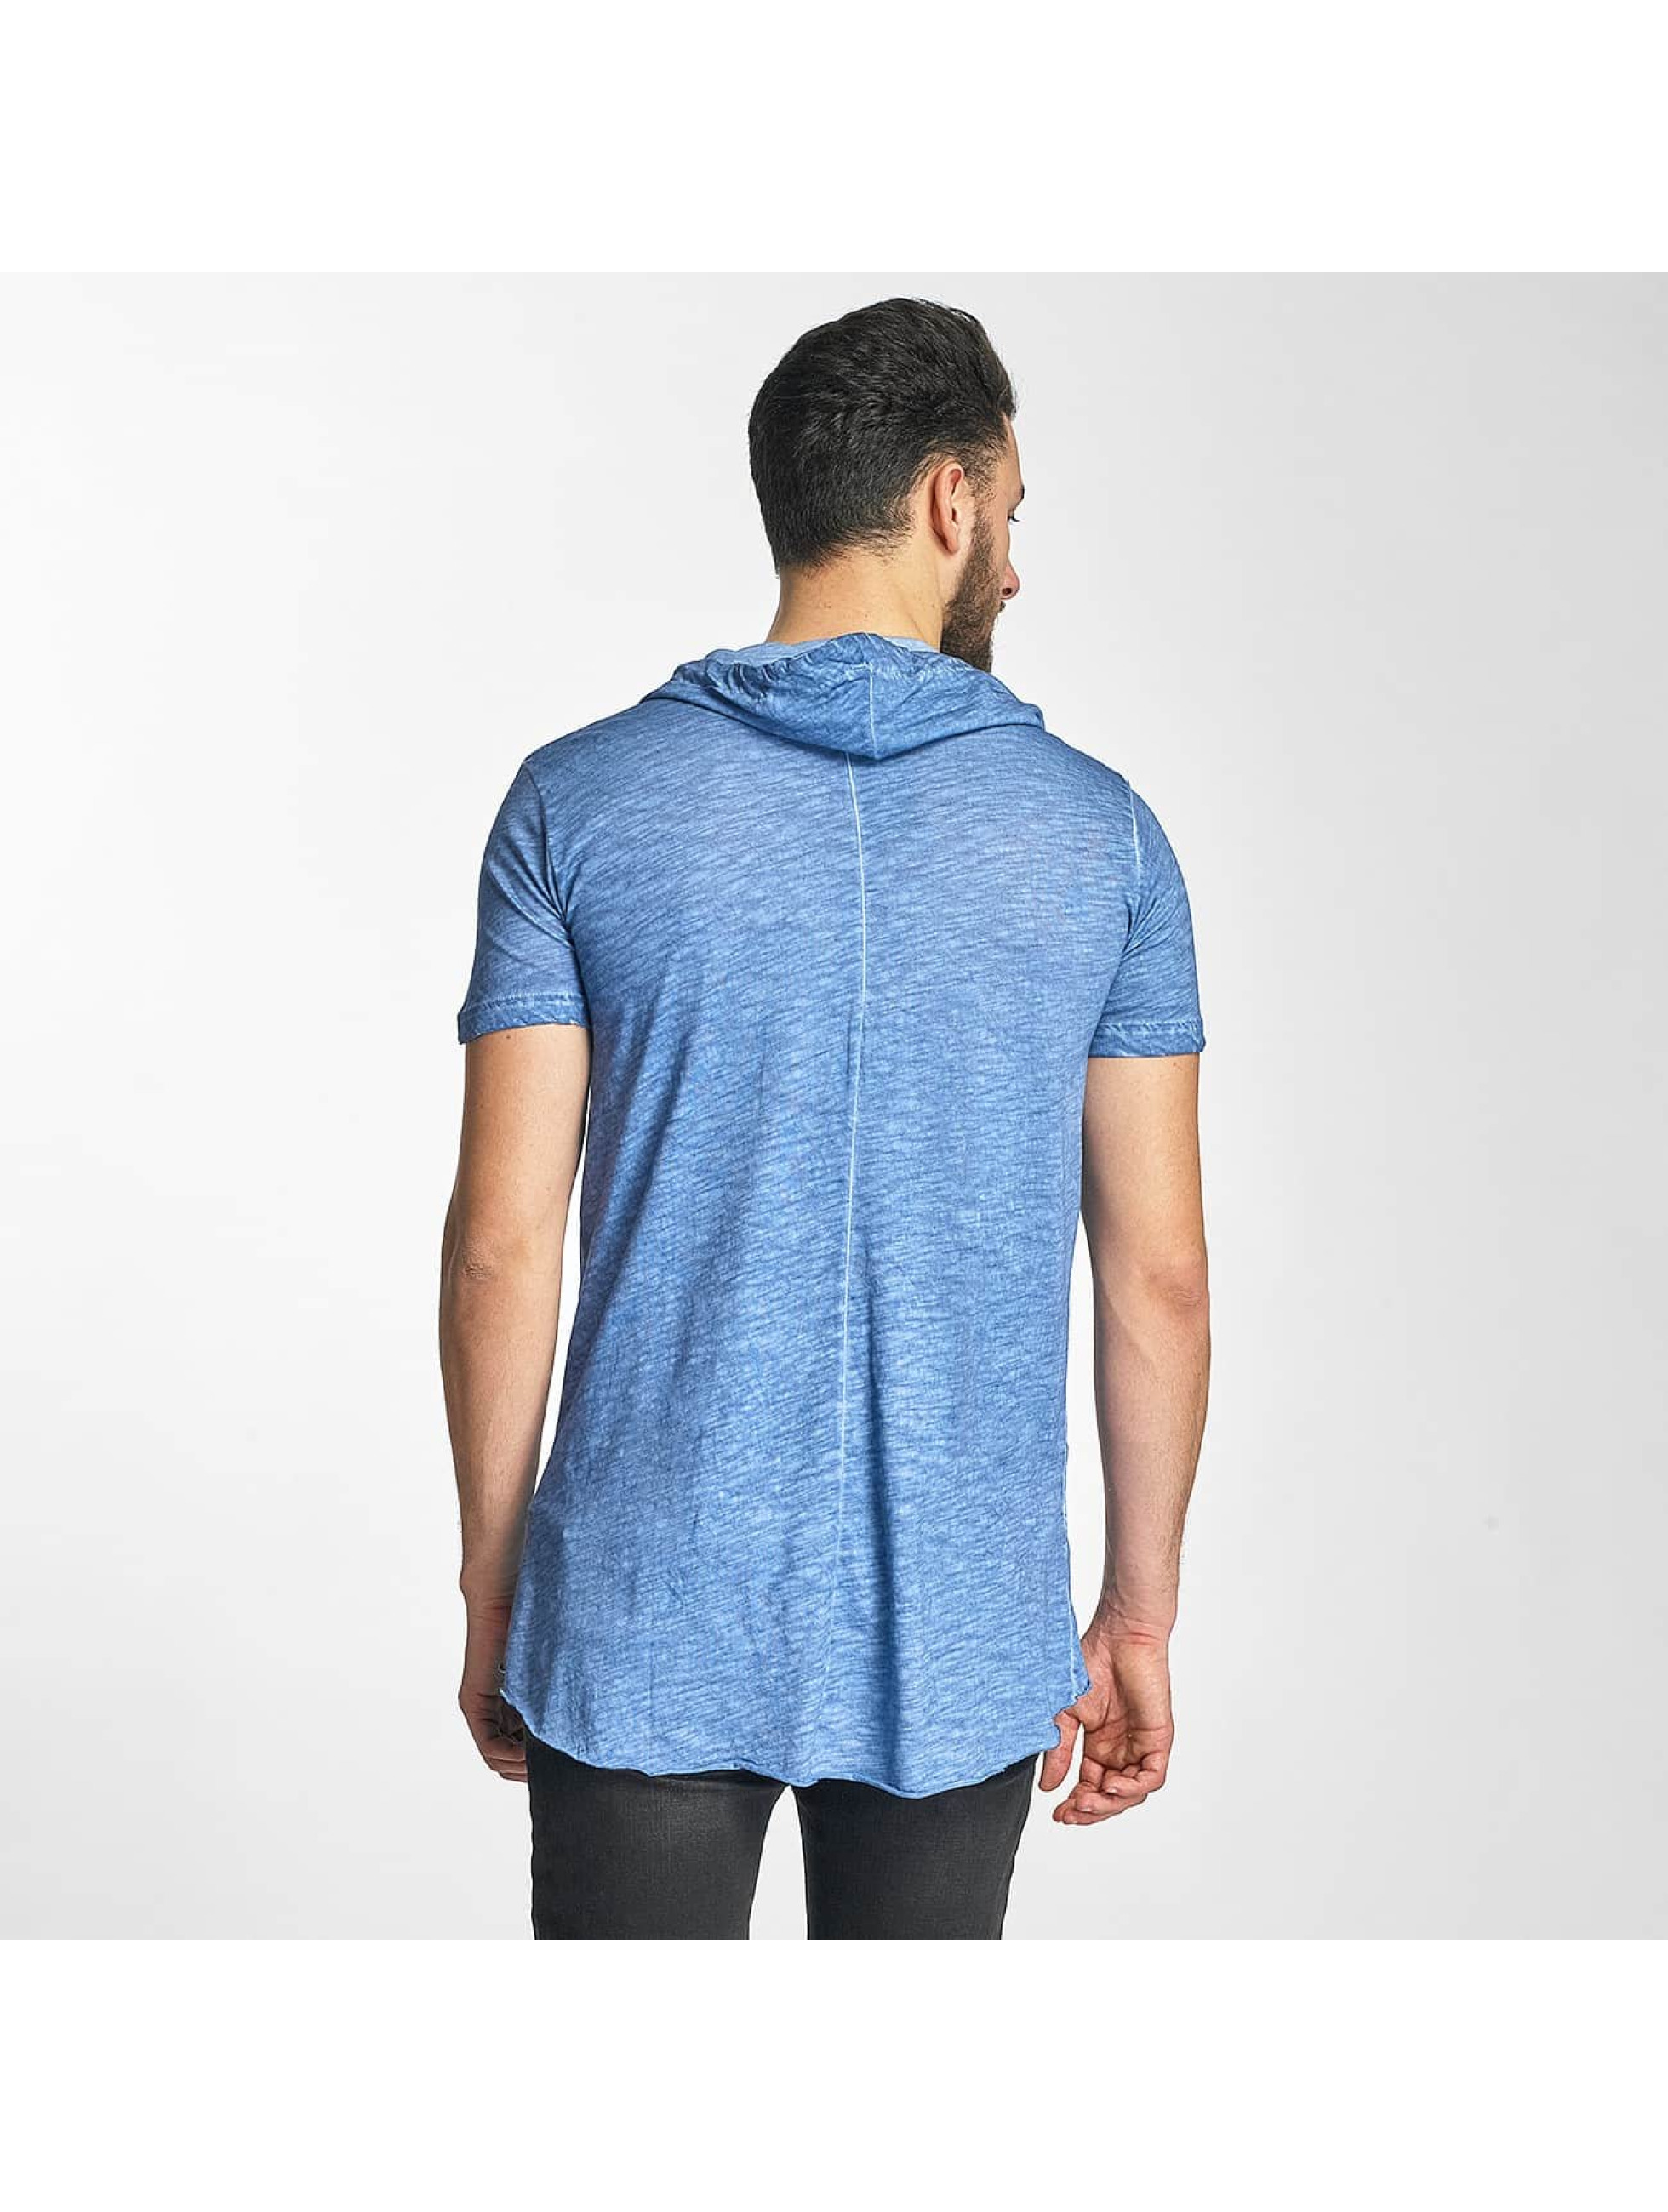 Red Bridge T-Shirt Elmon indigo